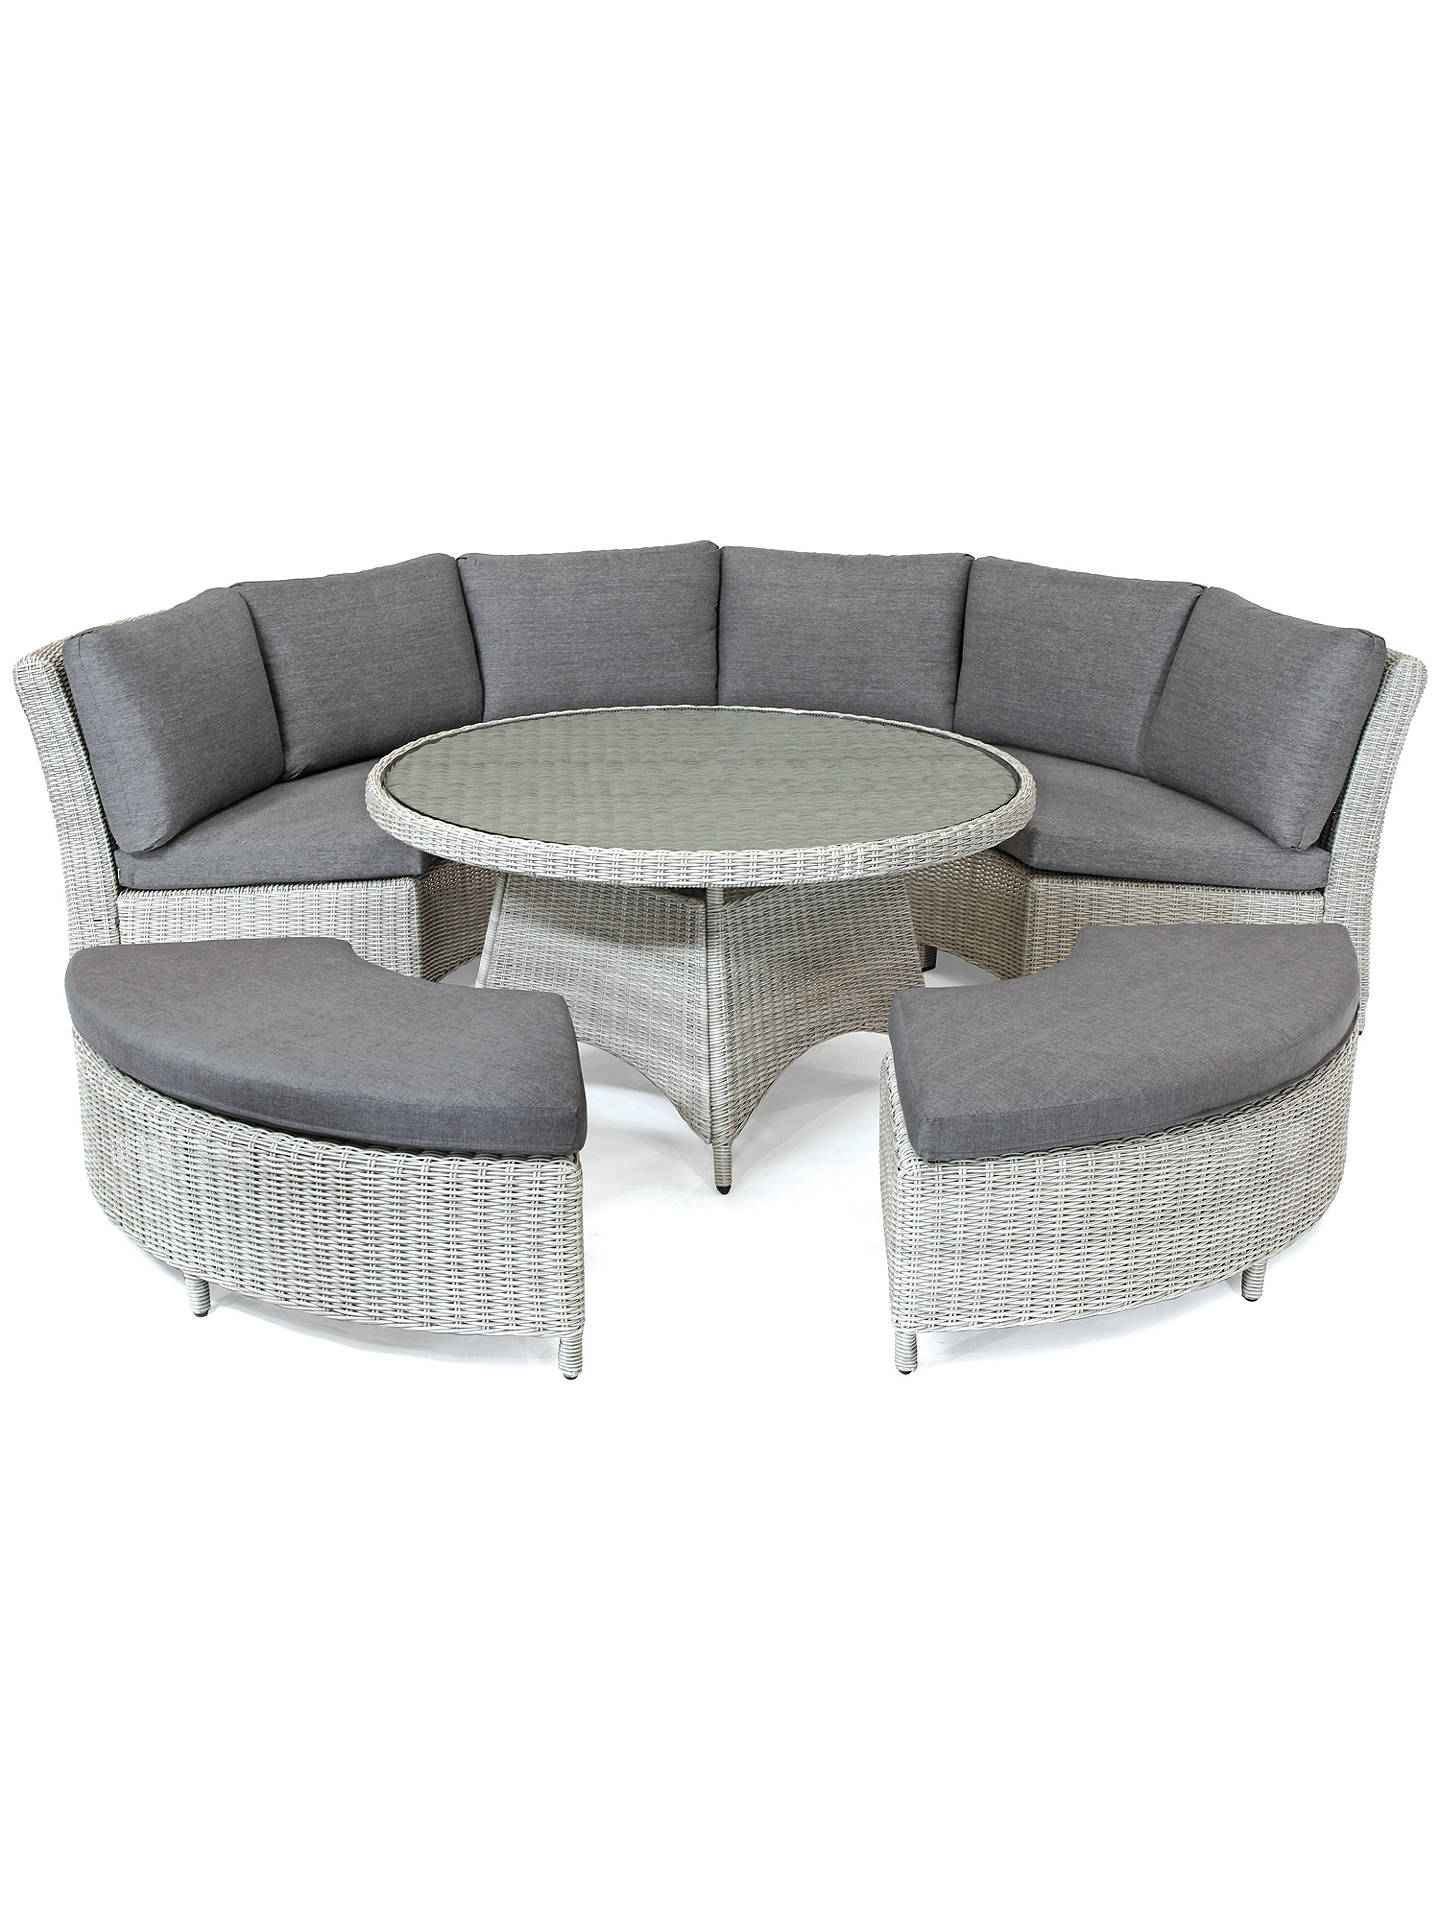 Kettler Palma 8 Seater Round Garden Dining Table And Chairs Set White Wash